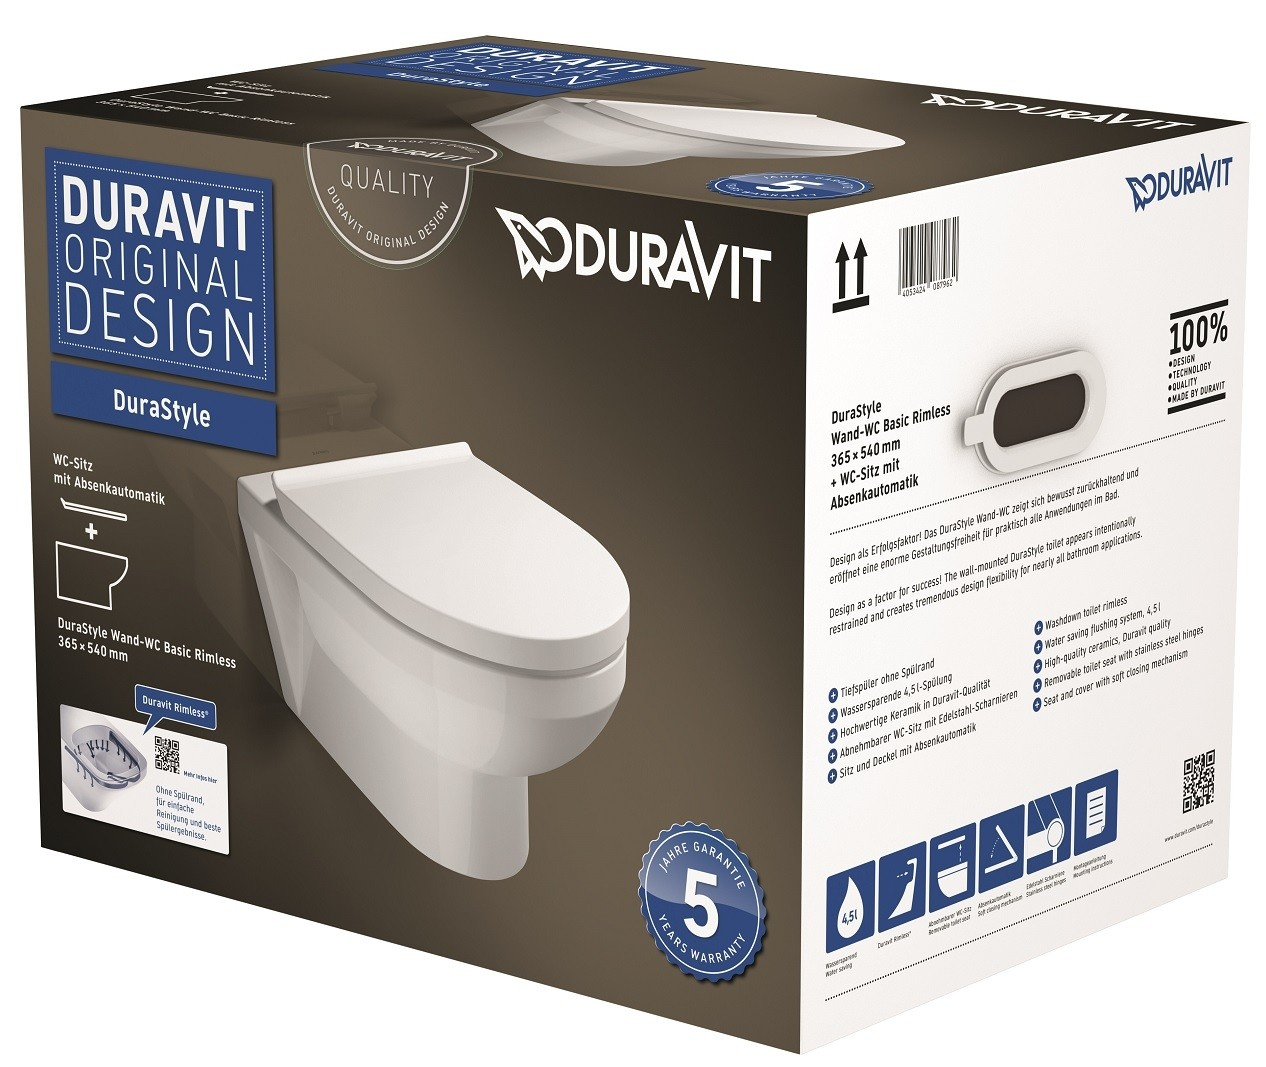 Astounding Duravit Durastyle Toilet Wall Mounted Basic Duravit Machost Co Dining Chair Design Ideas Machostcouk